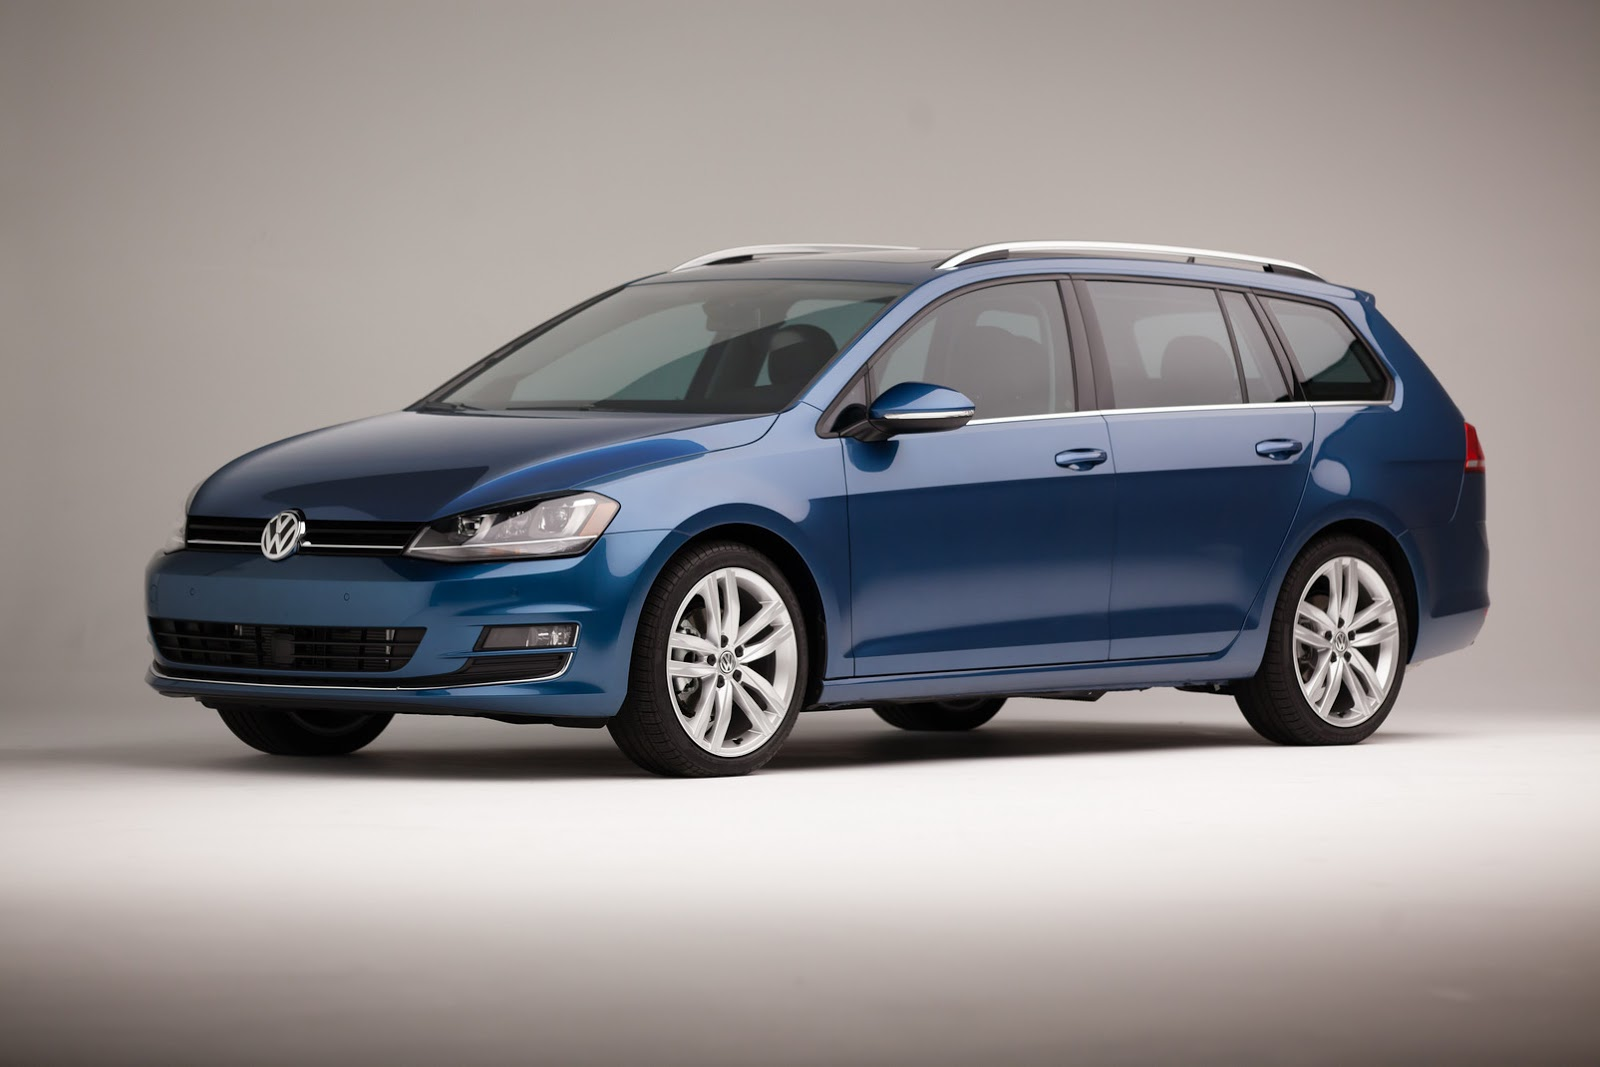 2015 VW Golf Wagon Prices Start from $21,395